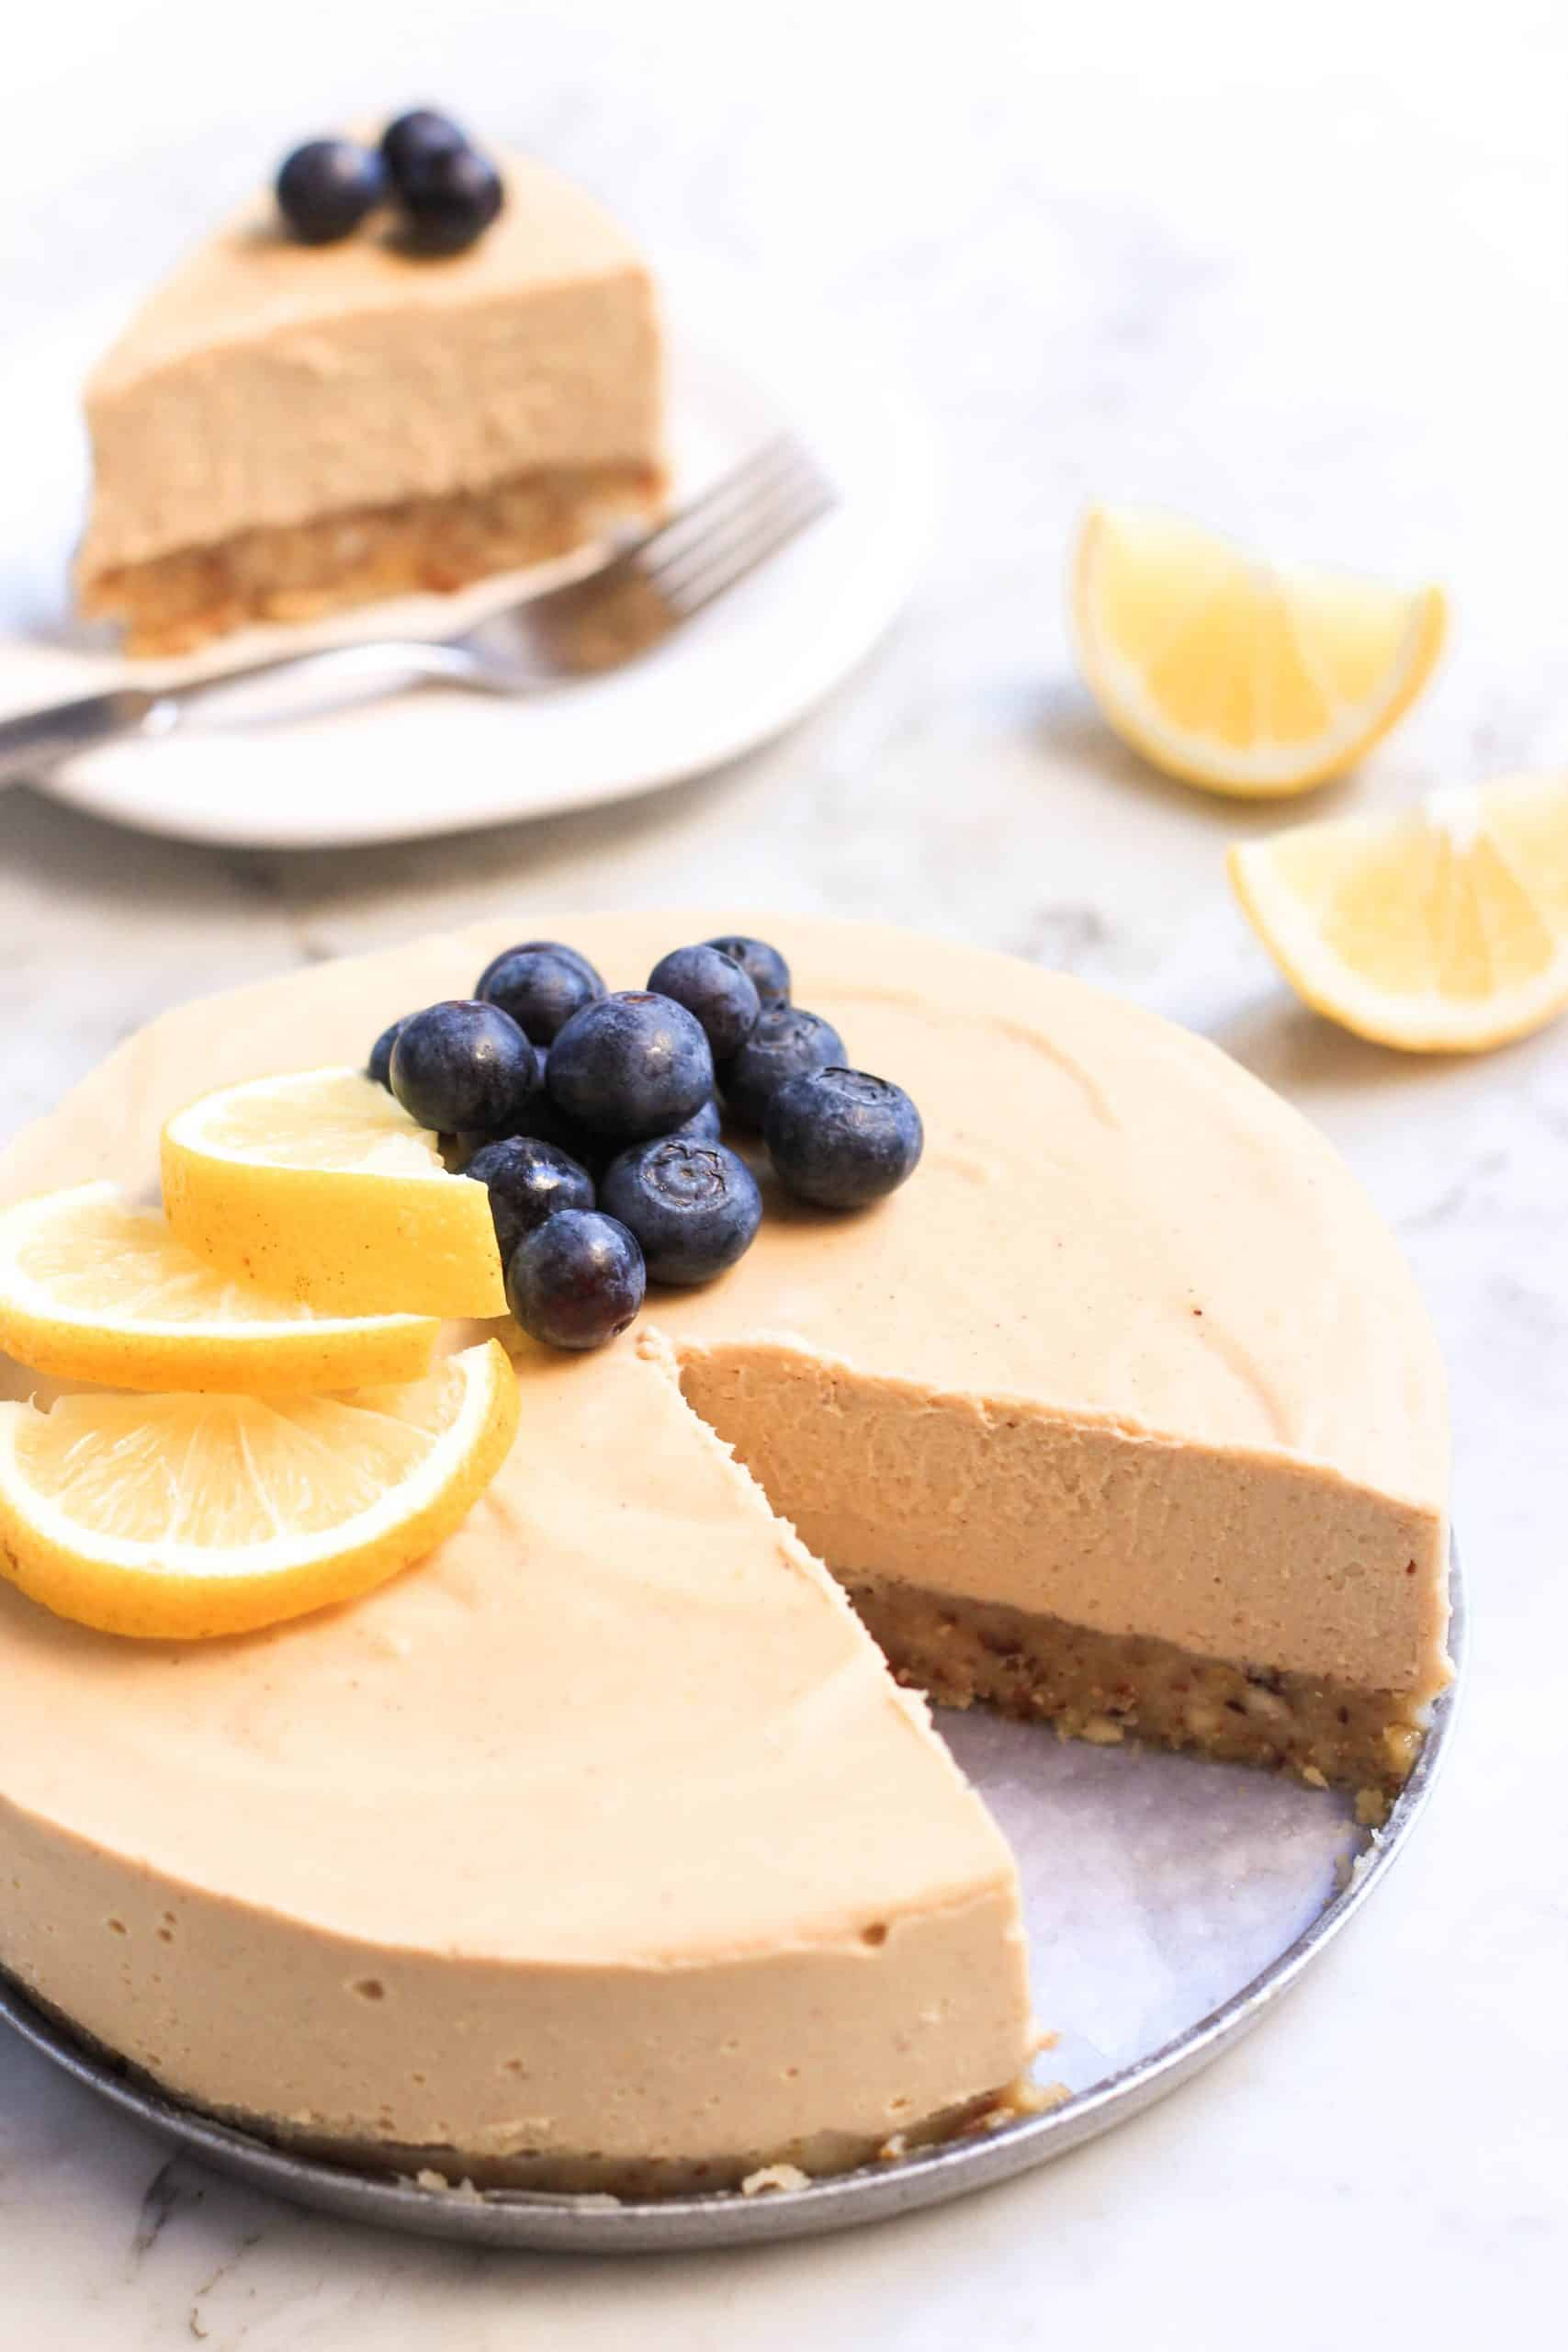 A sliced lemon cheesecake topped with fresh blueberries and lemon slices.